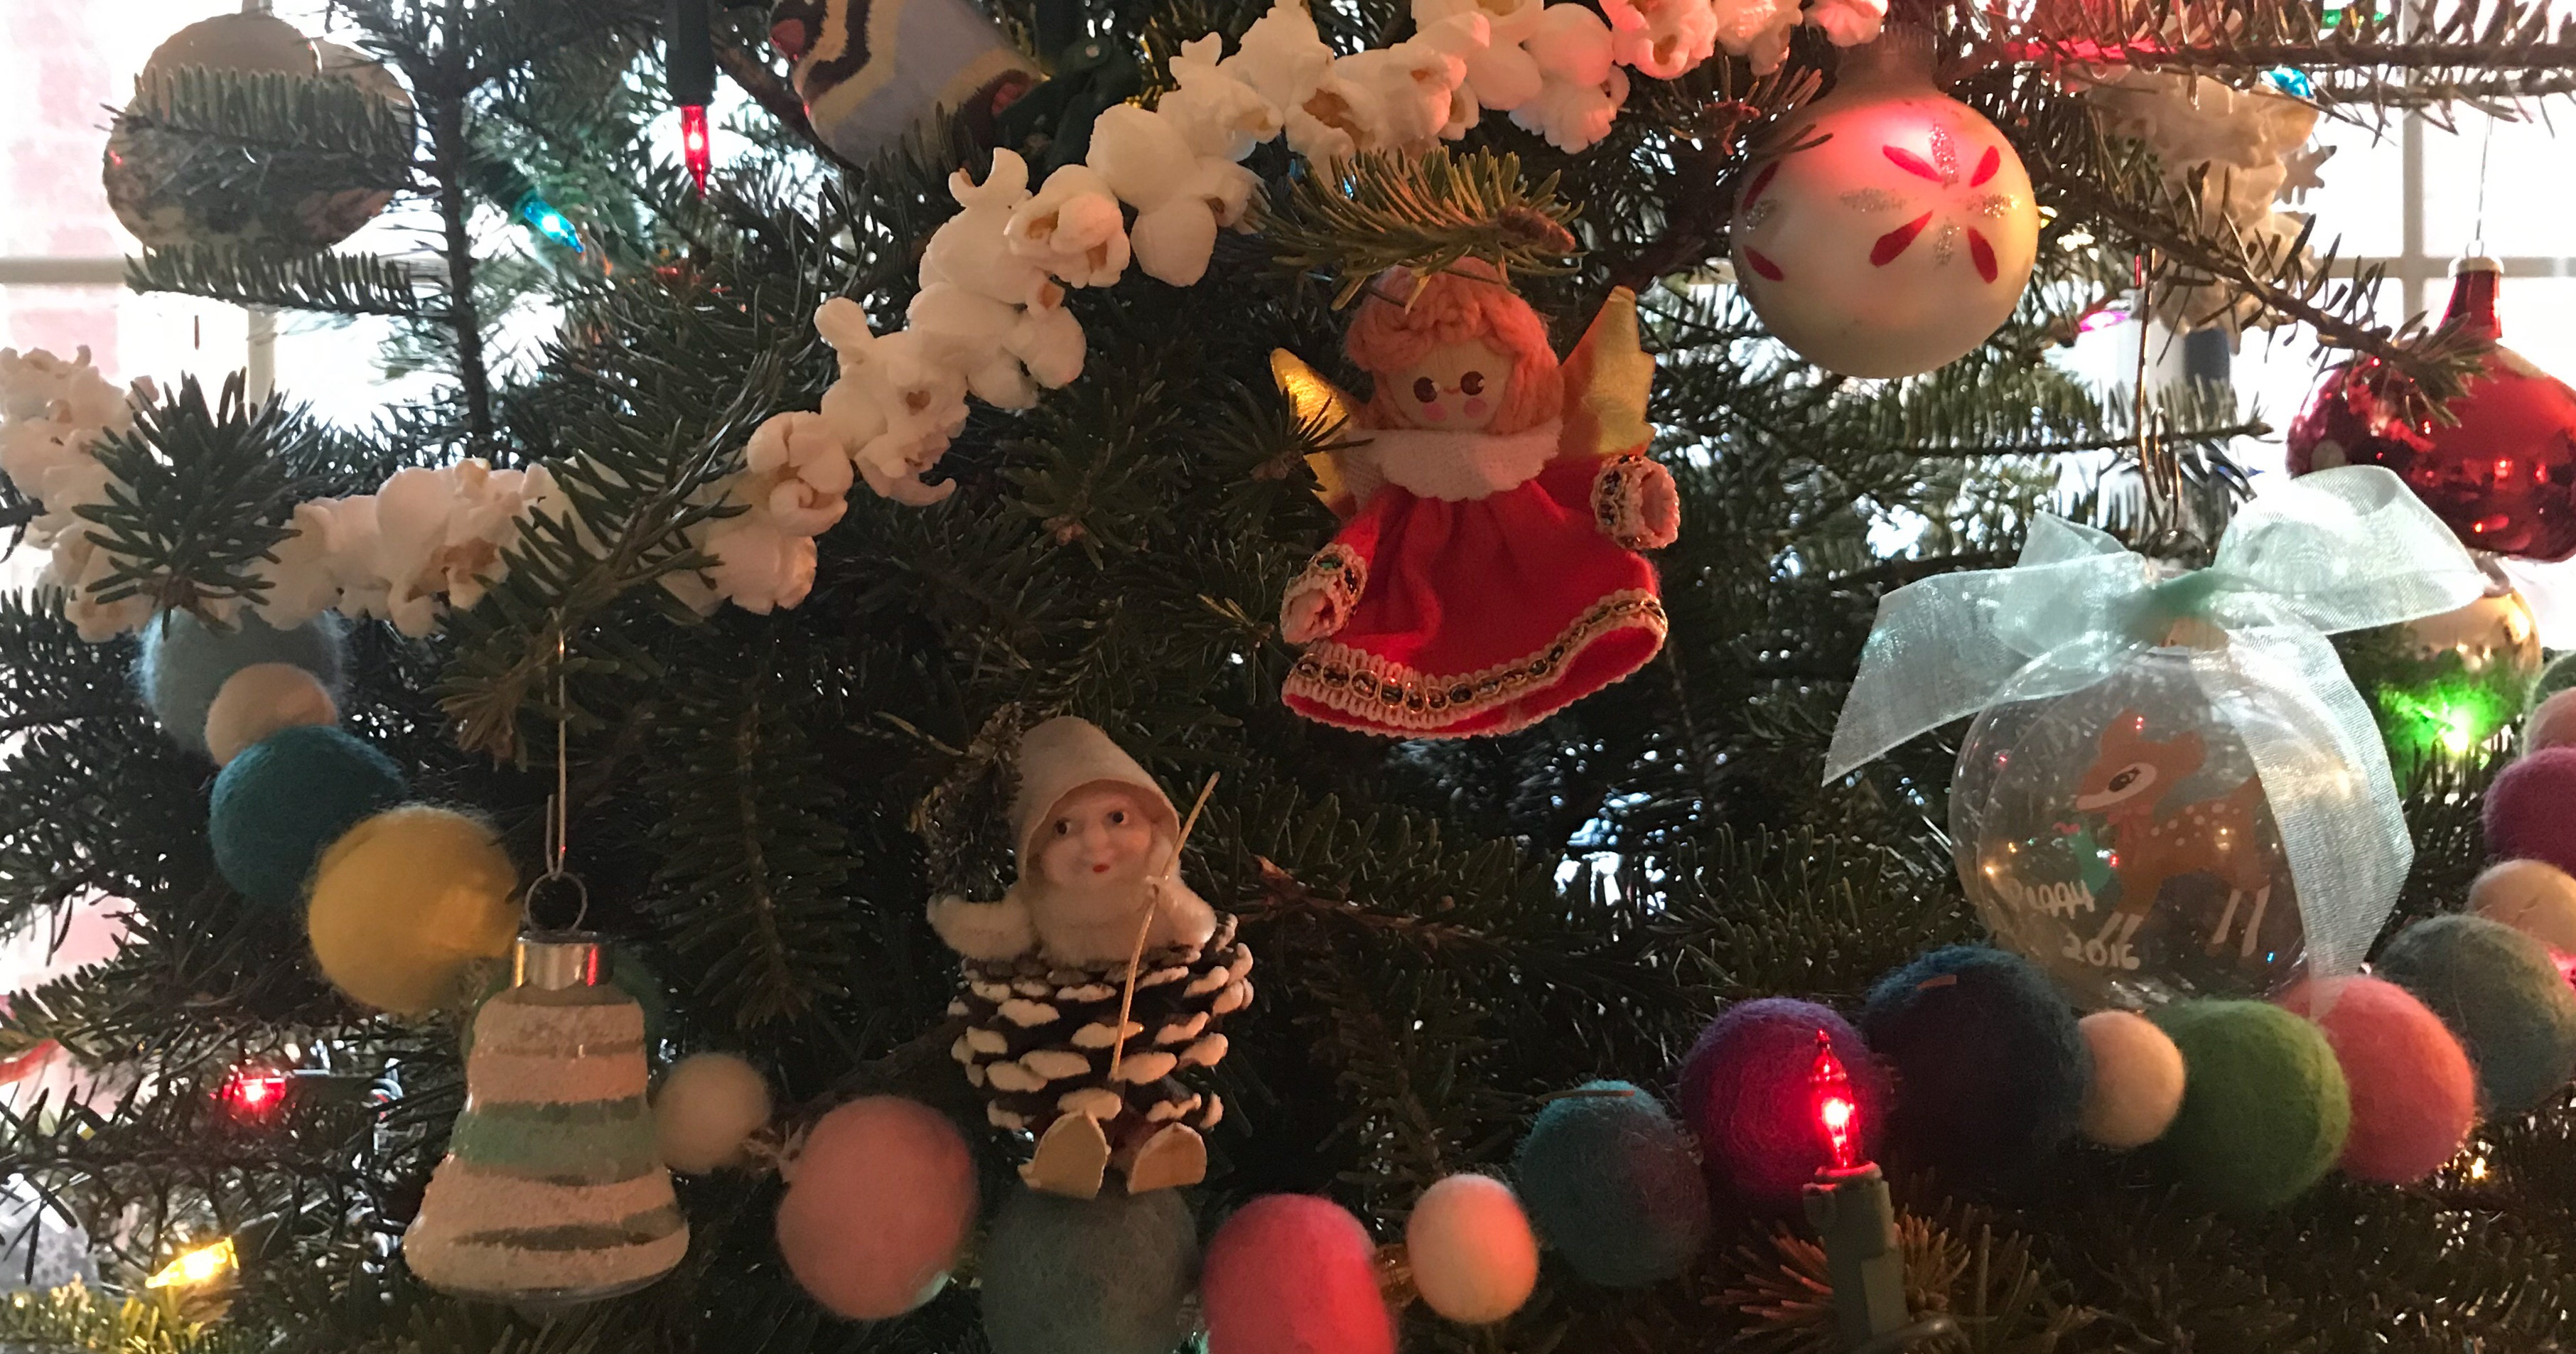 Christmas tradition of decorating the tree with collected ornaments